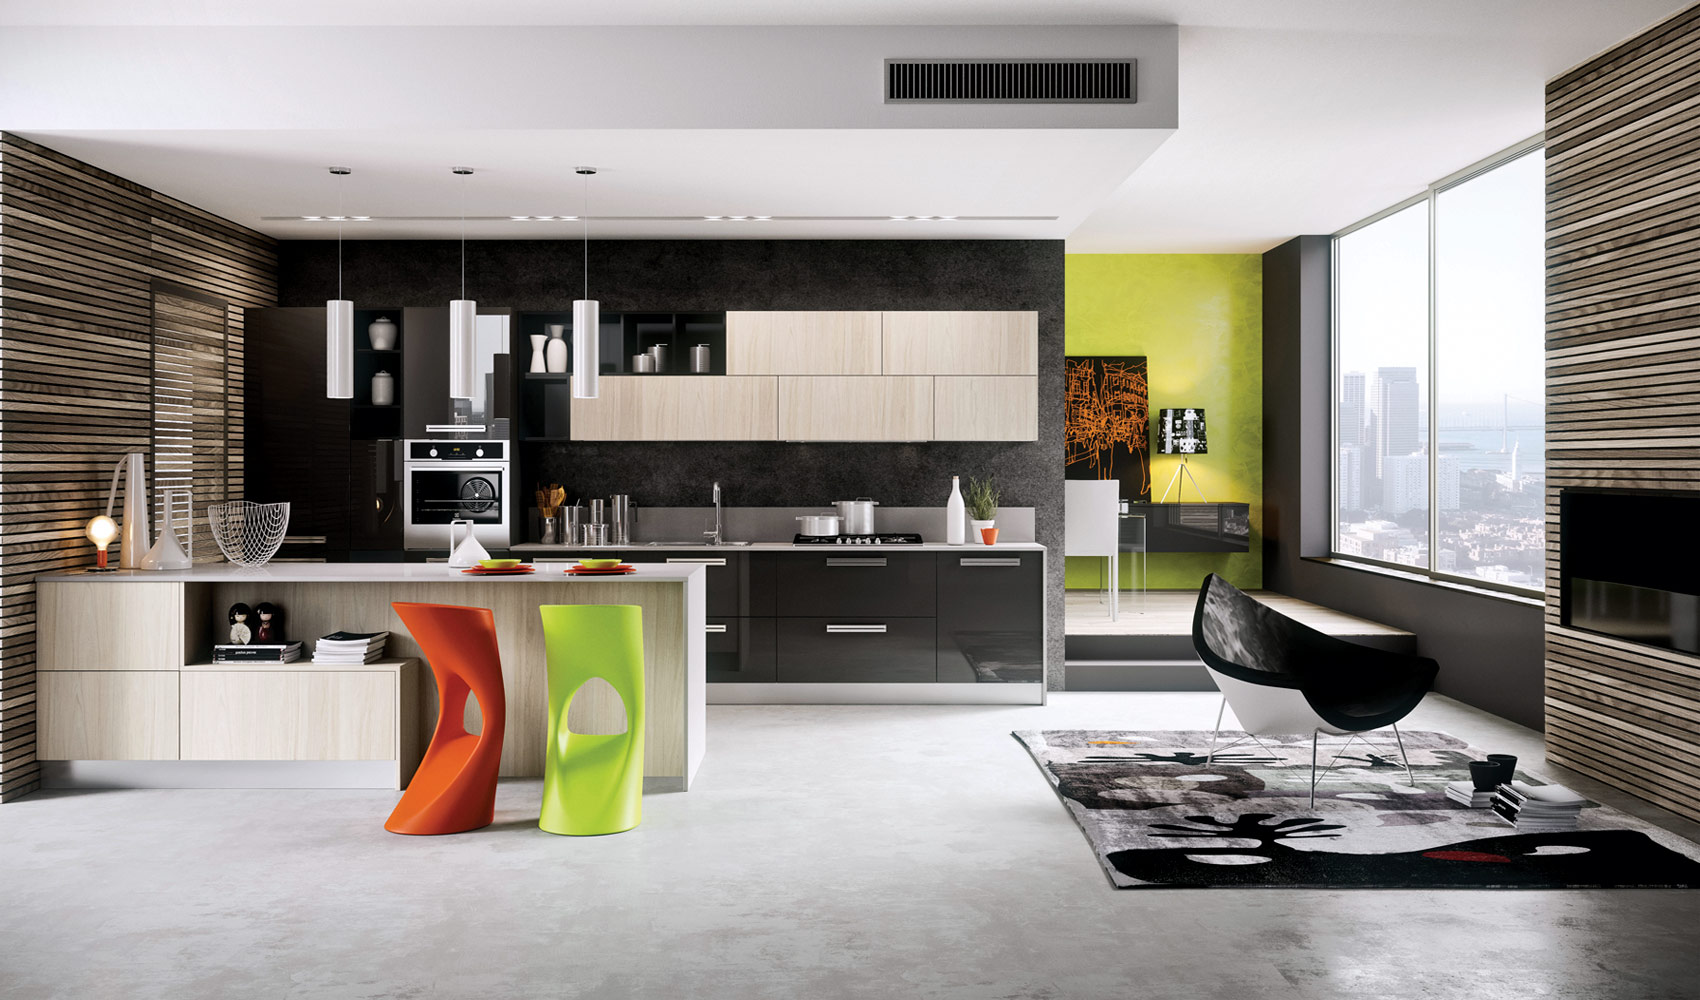 Dise o de cocinas modernas al estilo arte pop construye for Top kitchen designs 2015